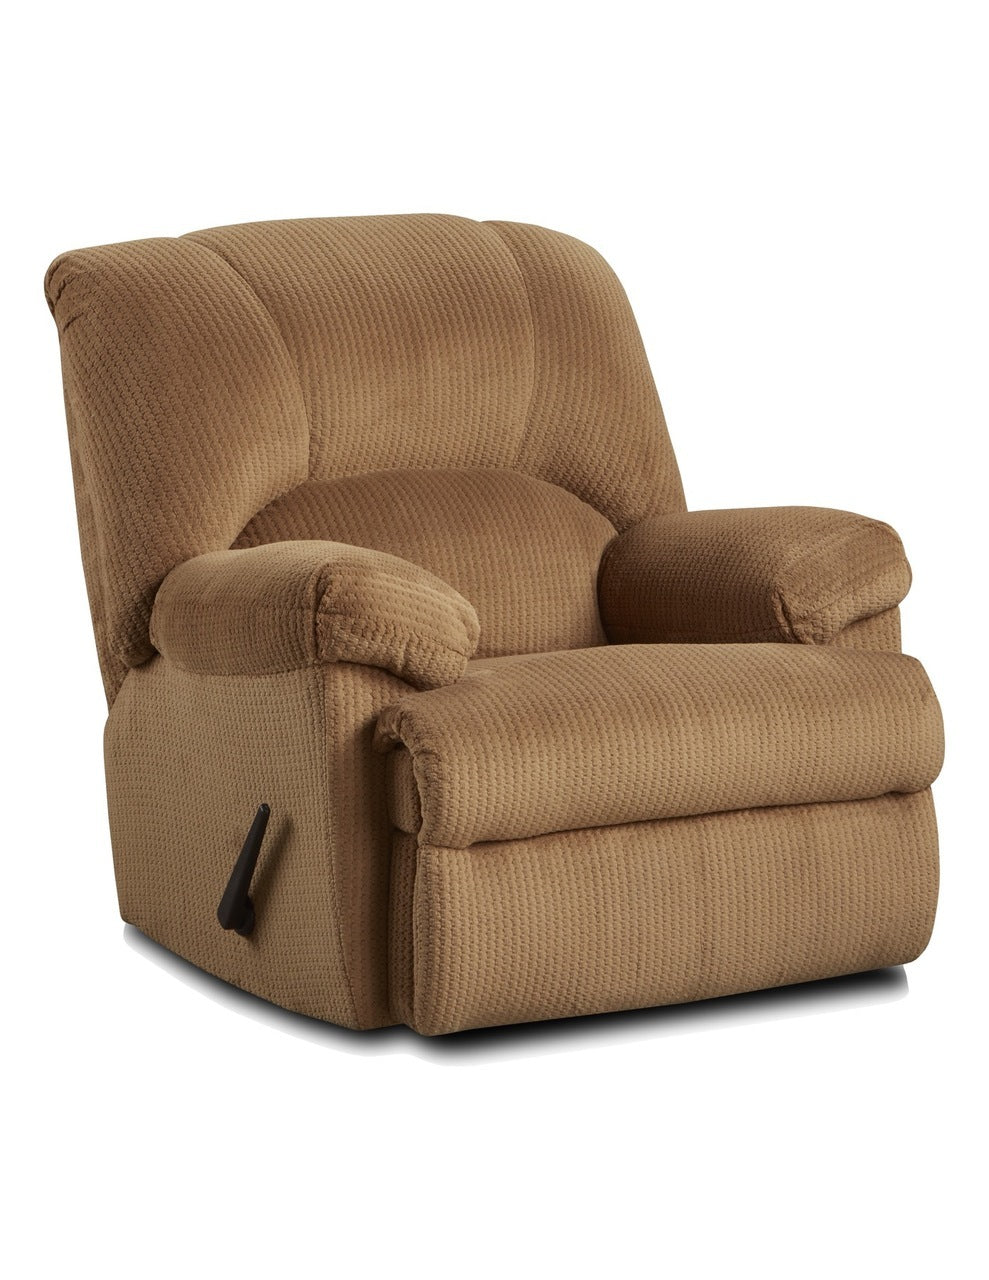 Feel Good Camel Recliner